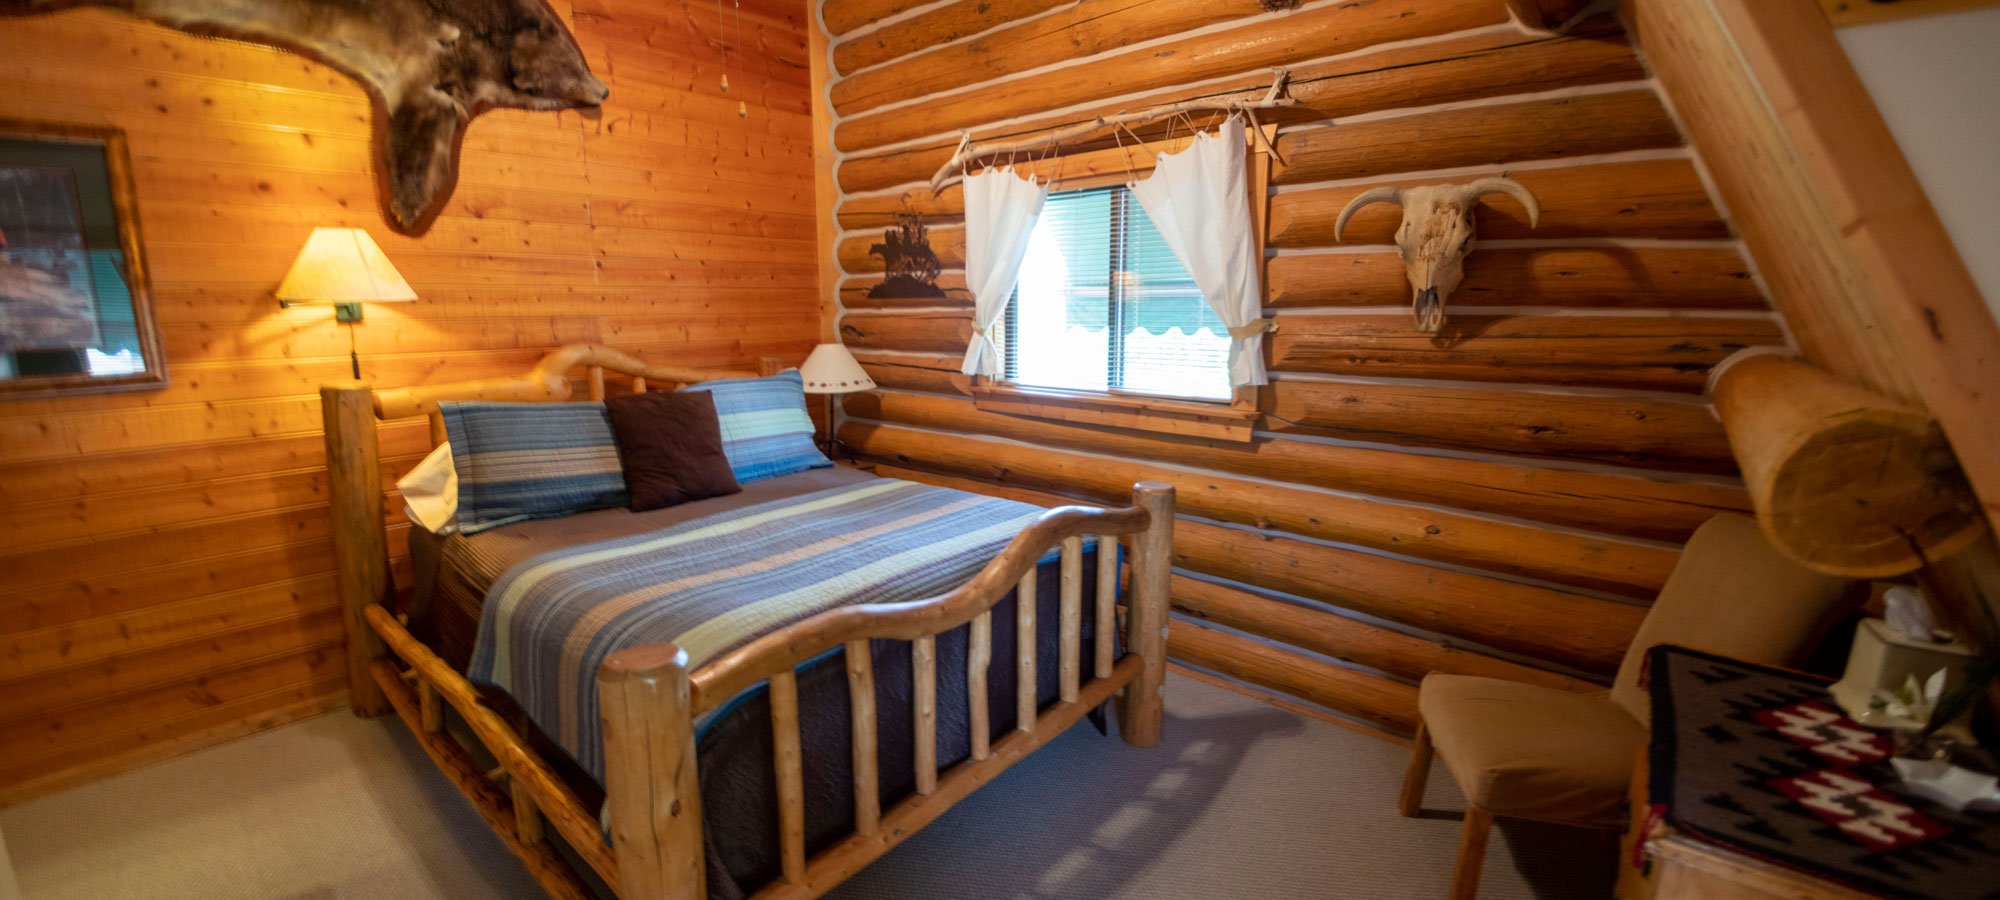 Backcountry room with bed and lamp